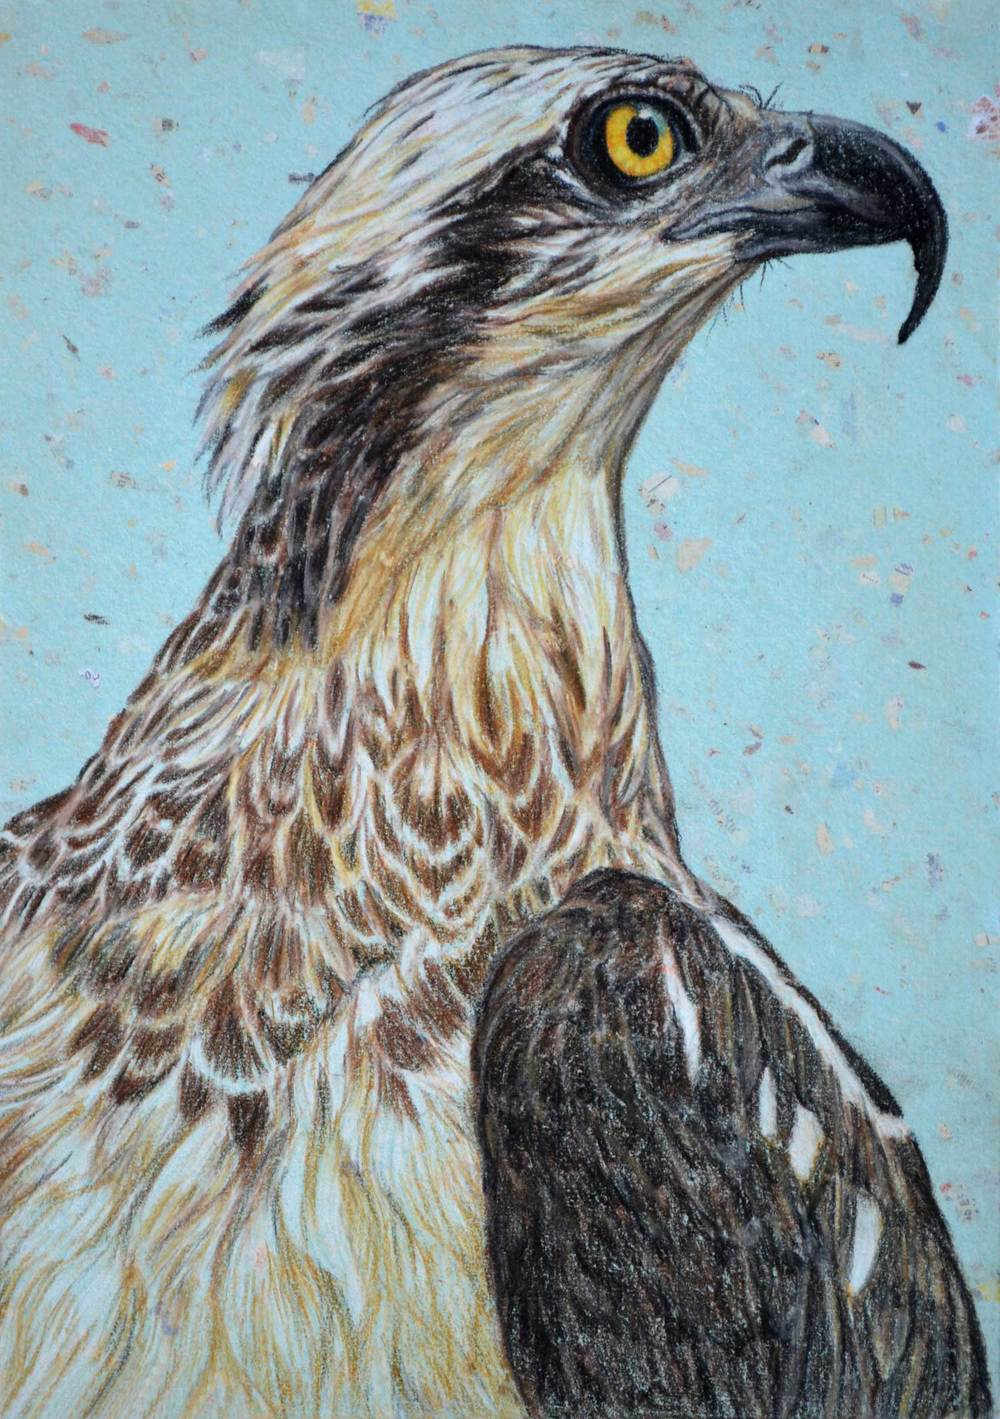 osprey-2-drawing-rachel-newling_edited-1.jpg